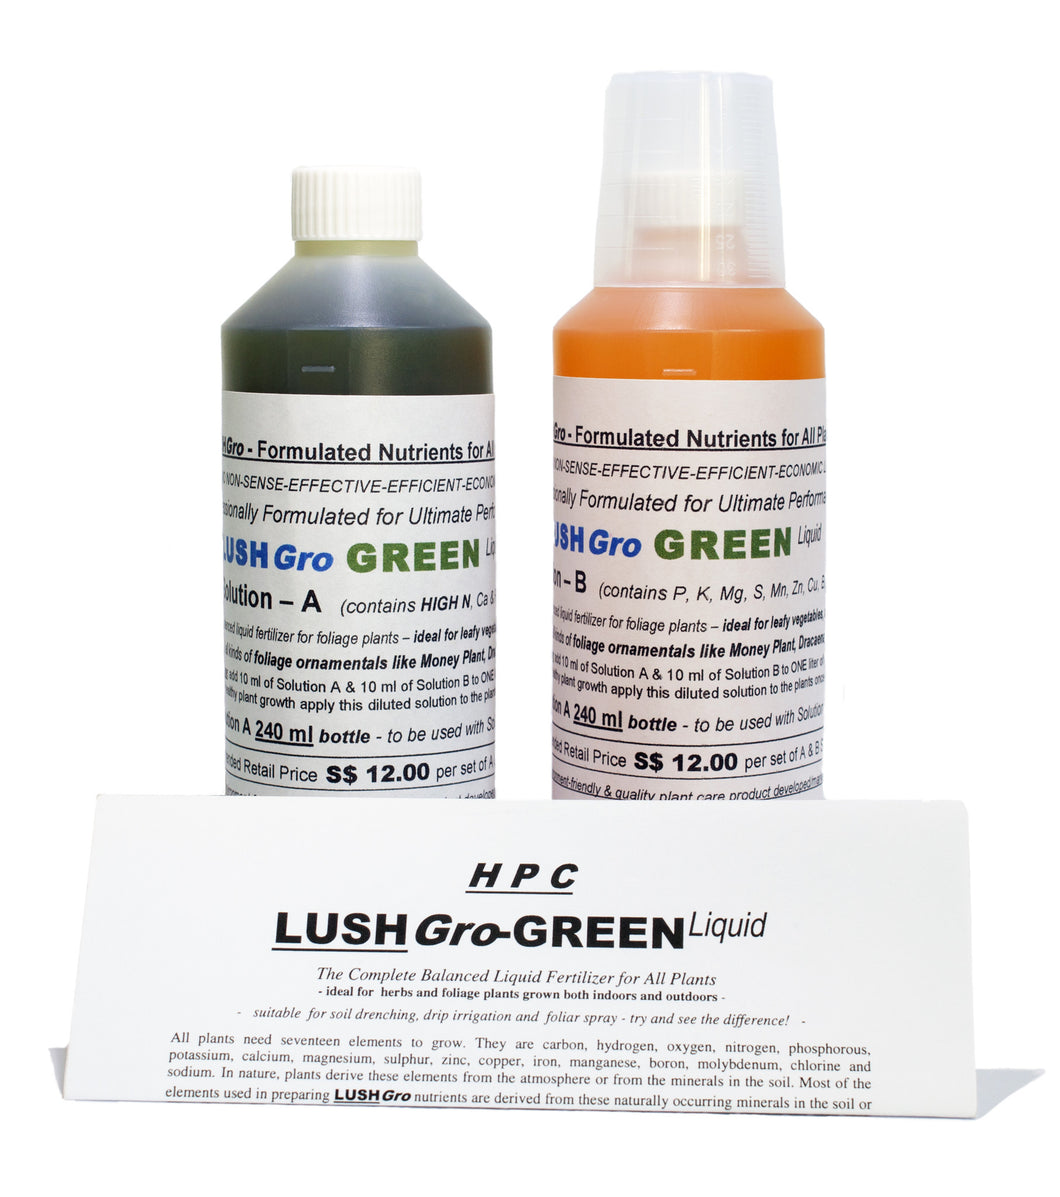 LushGro - Green Liquid